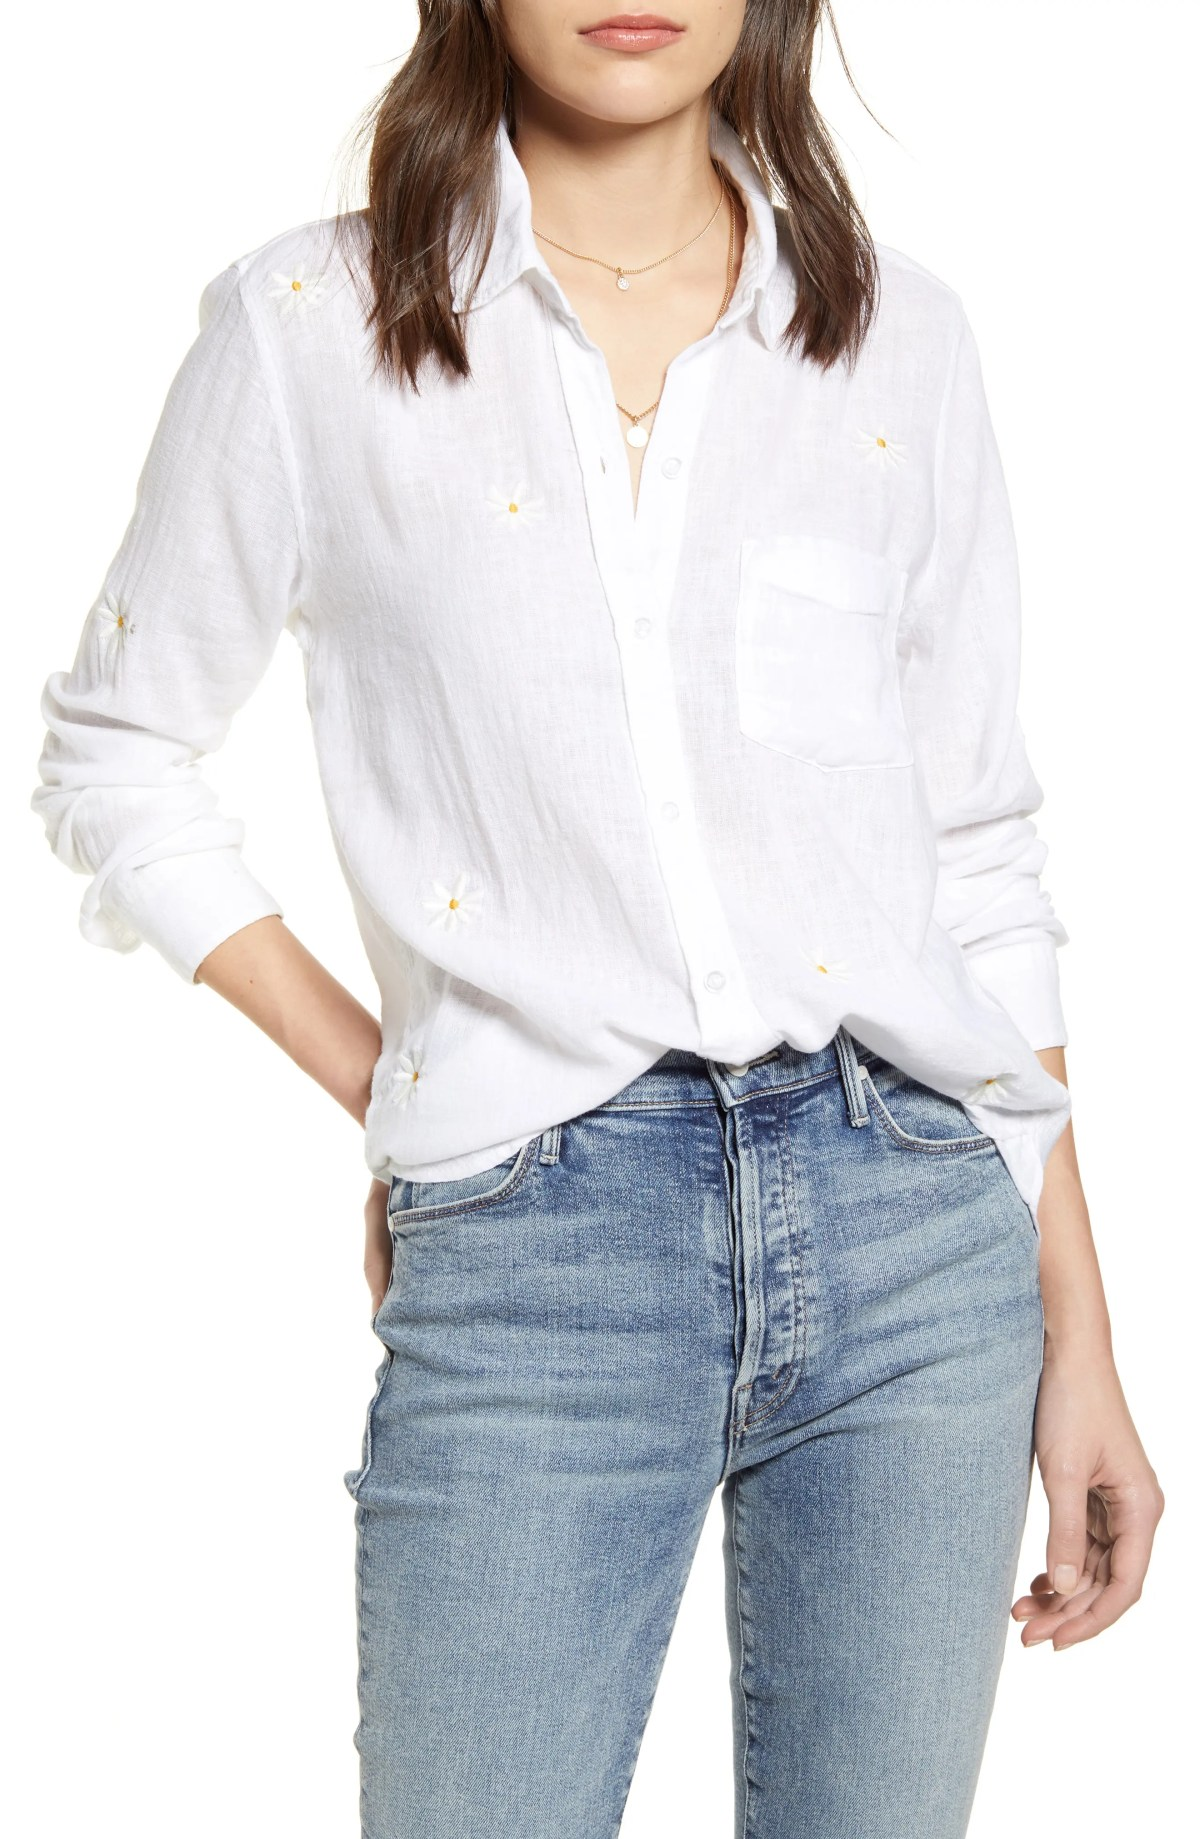 RAILS Charli Shirt, Main, color, WHITE DAISY EMBROIDERY